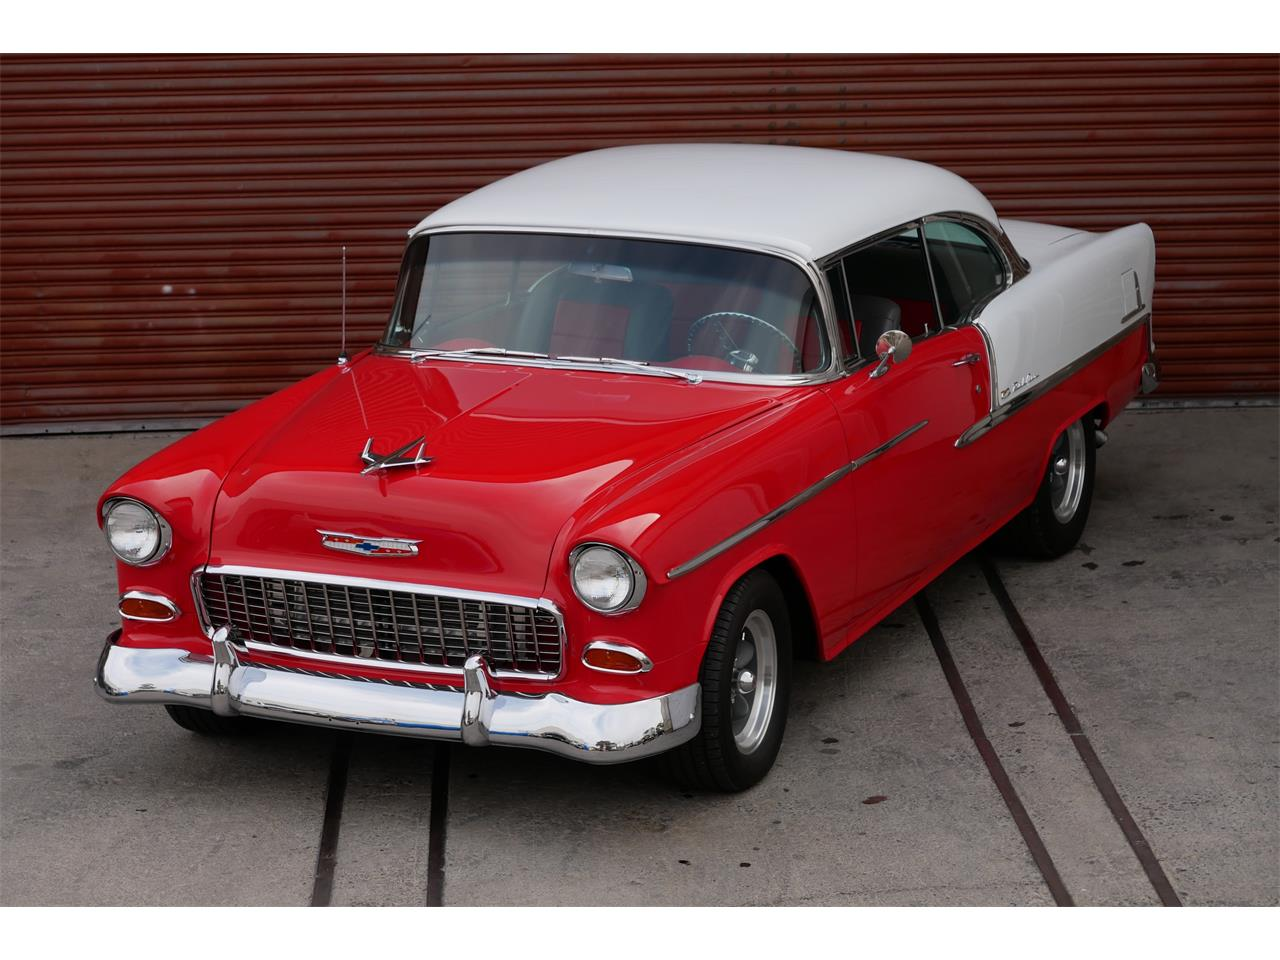 1955 Chevrolet Bel Air (CC-1414476) for sale in Reno, Nevada